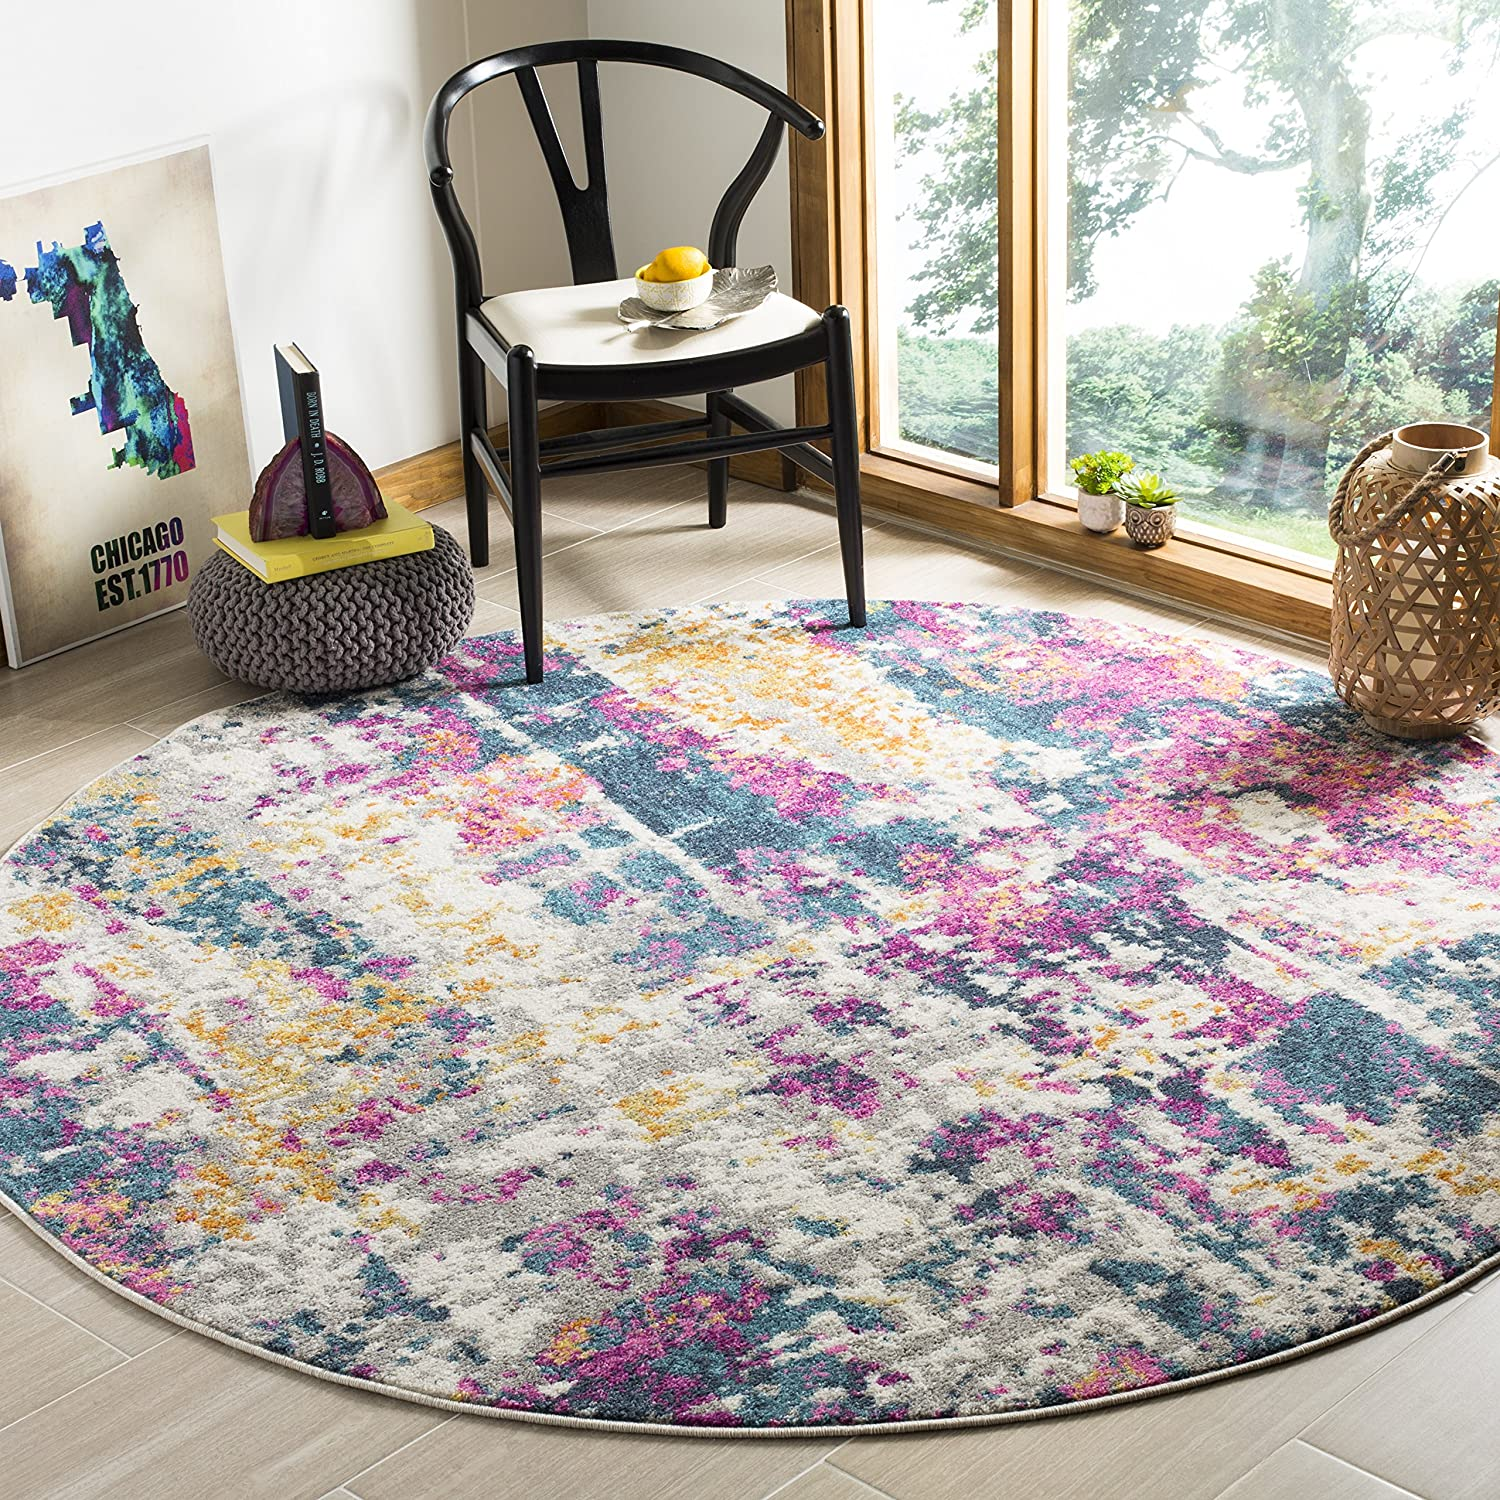 Safavieh Madison Collection MAD143B Ivory and Blue Modern Bohemian Chic Abstract Area Rug 3 x 5 MAD143B-3